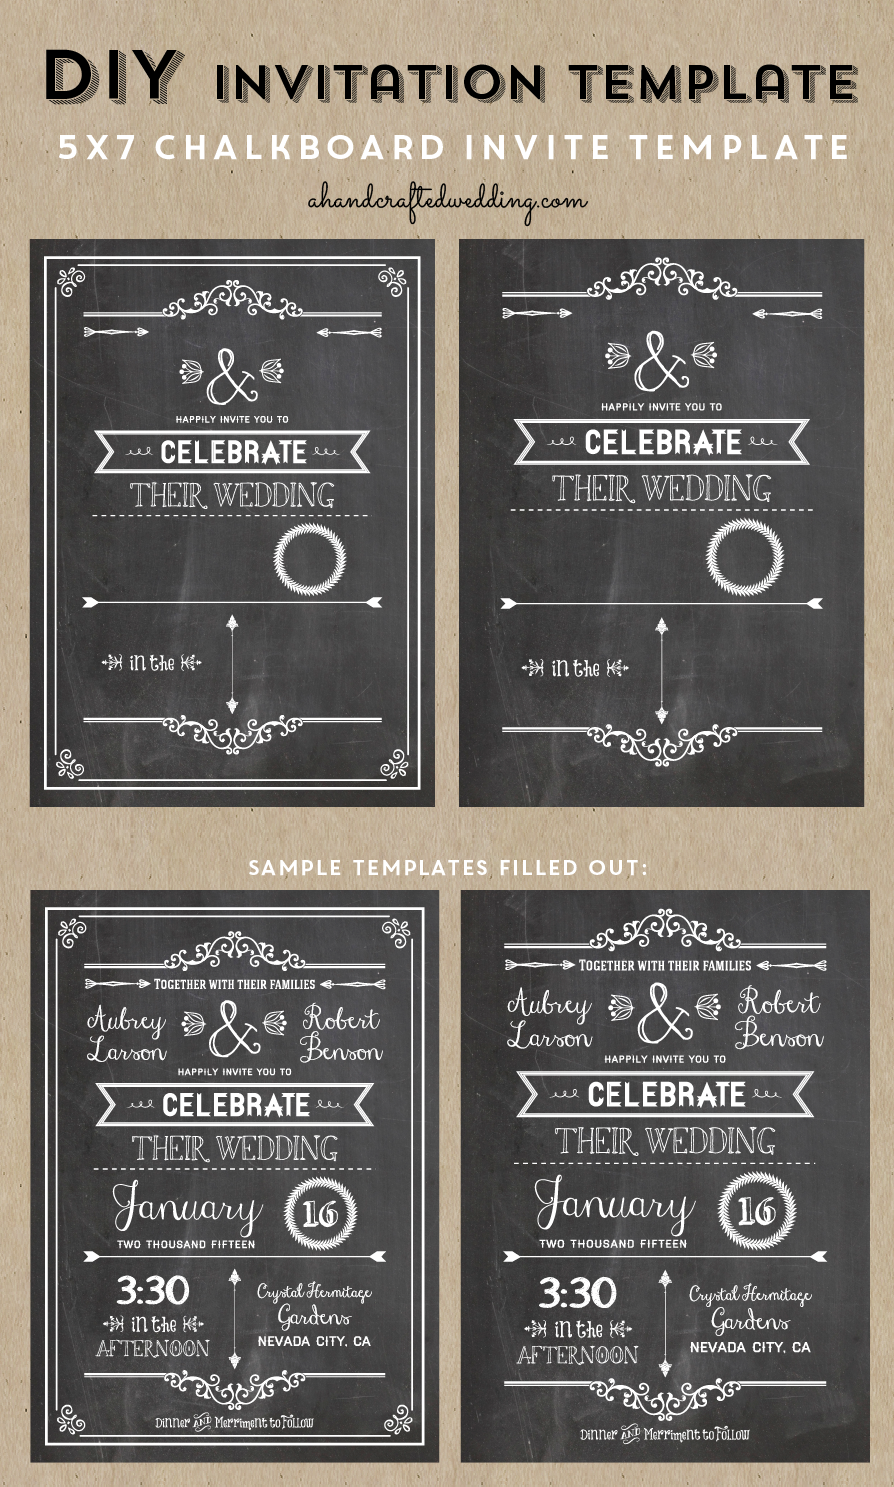 Check Out This Printable Diy Chalkboard Wedding Invitation Template